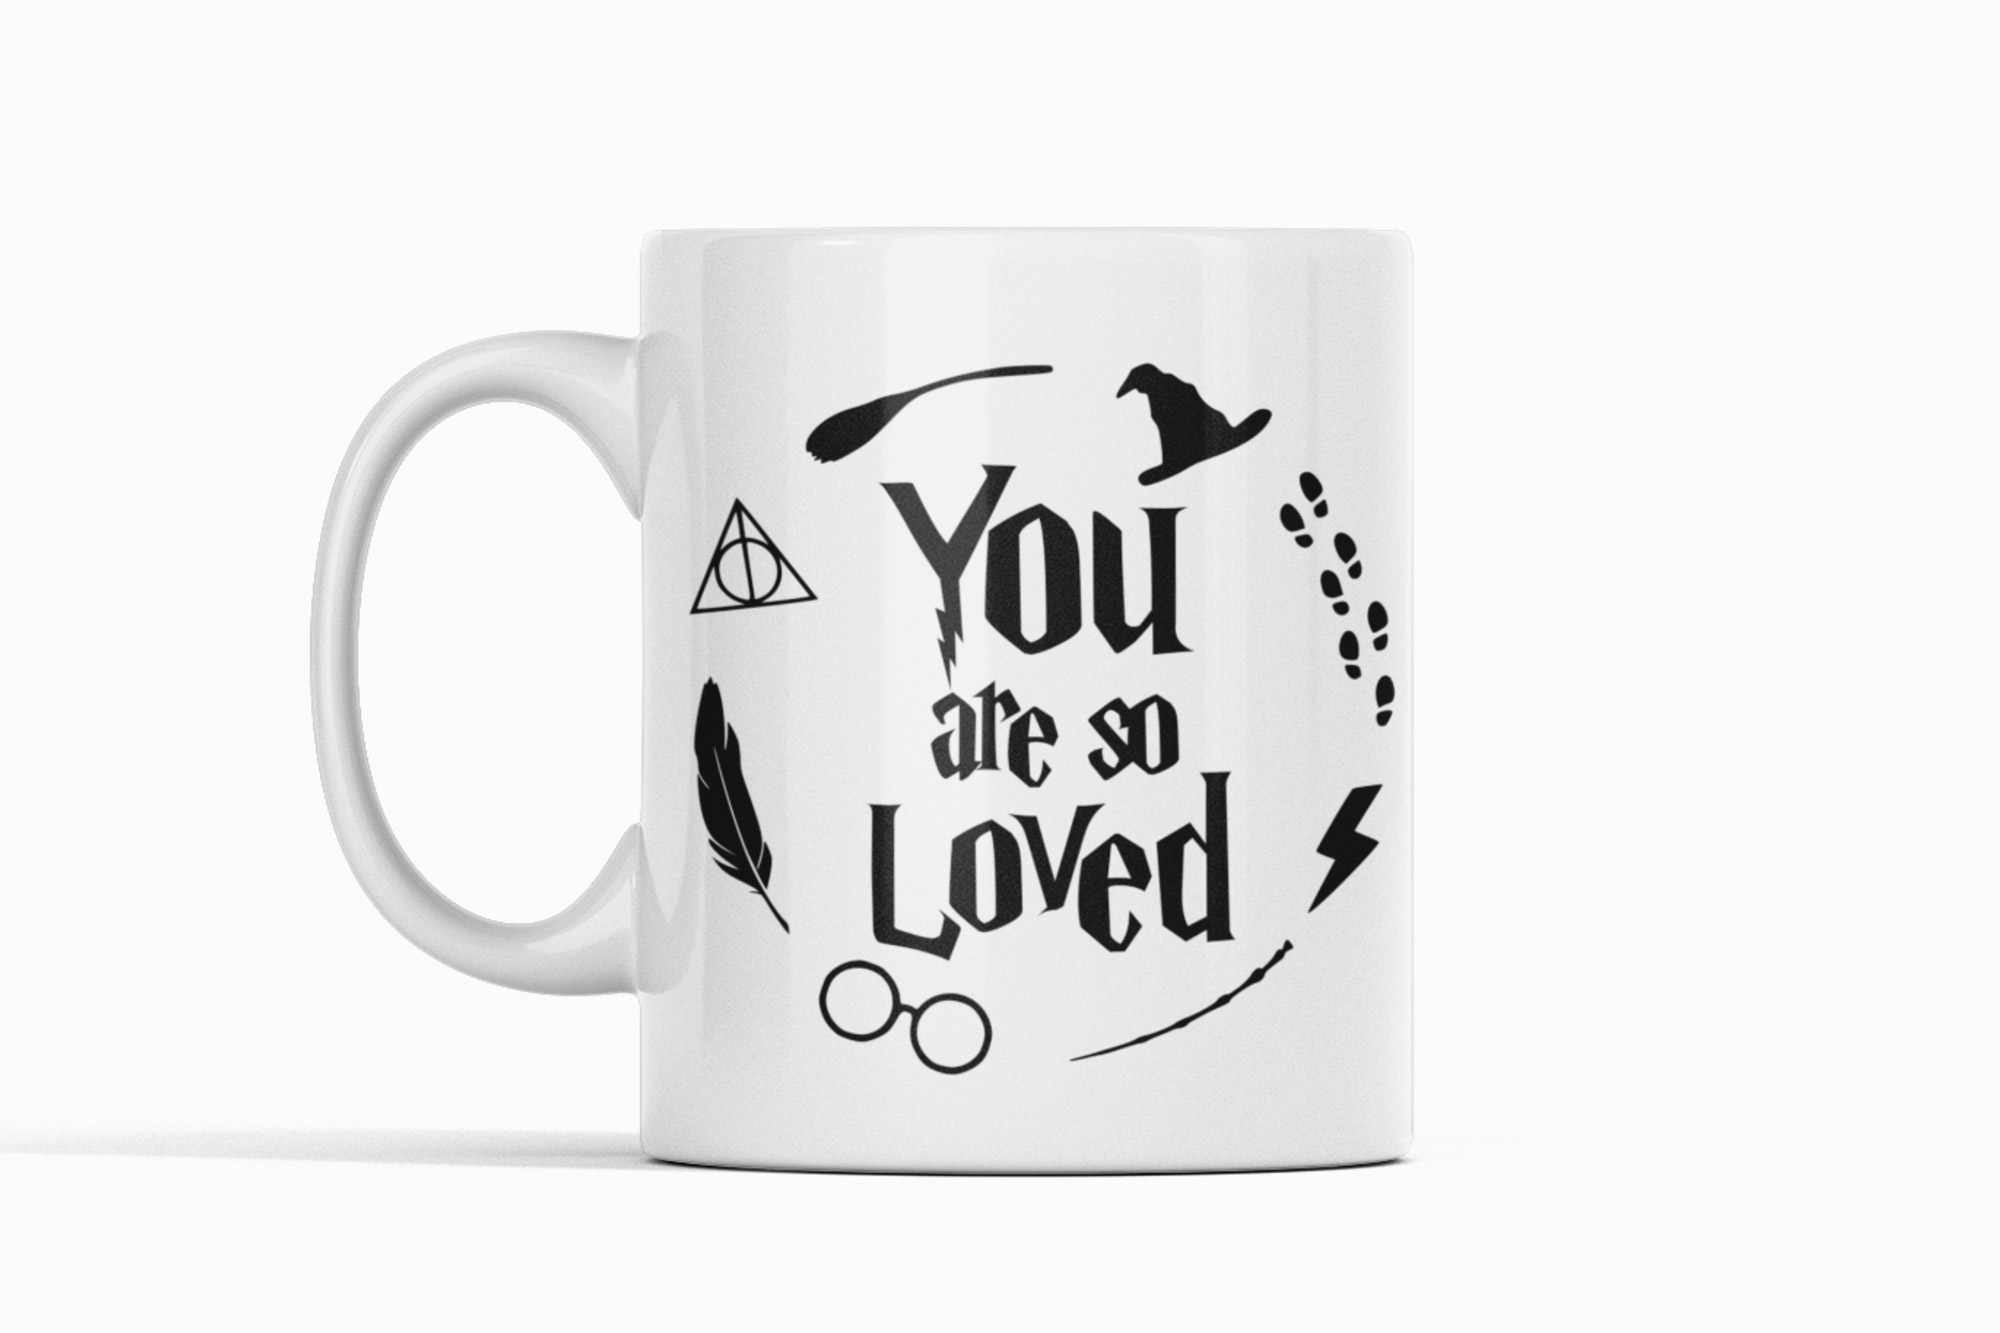 you are so loved mug on a white background